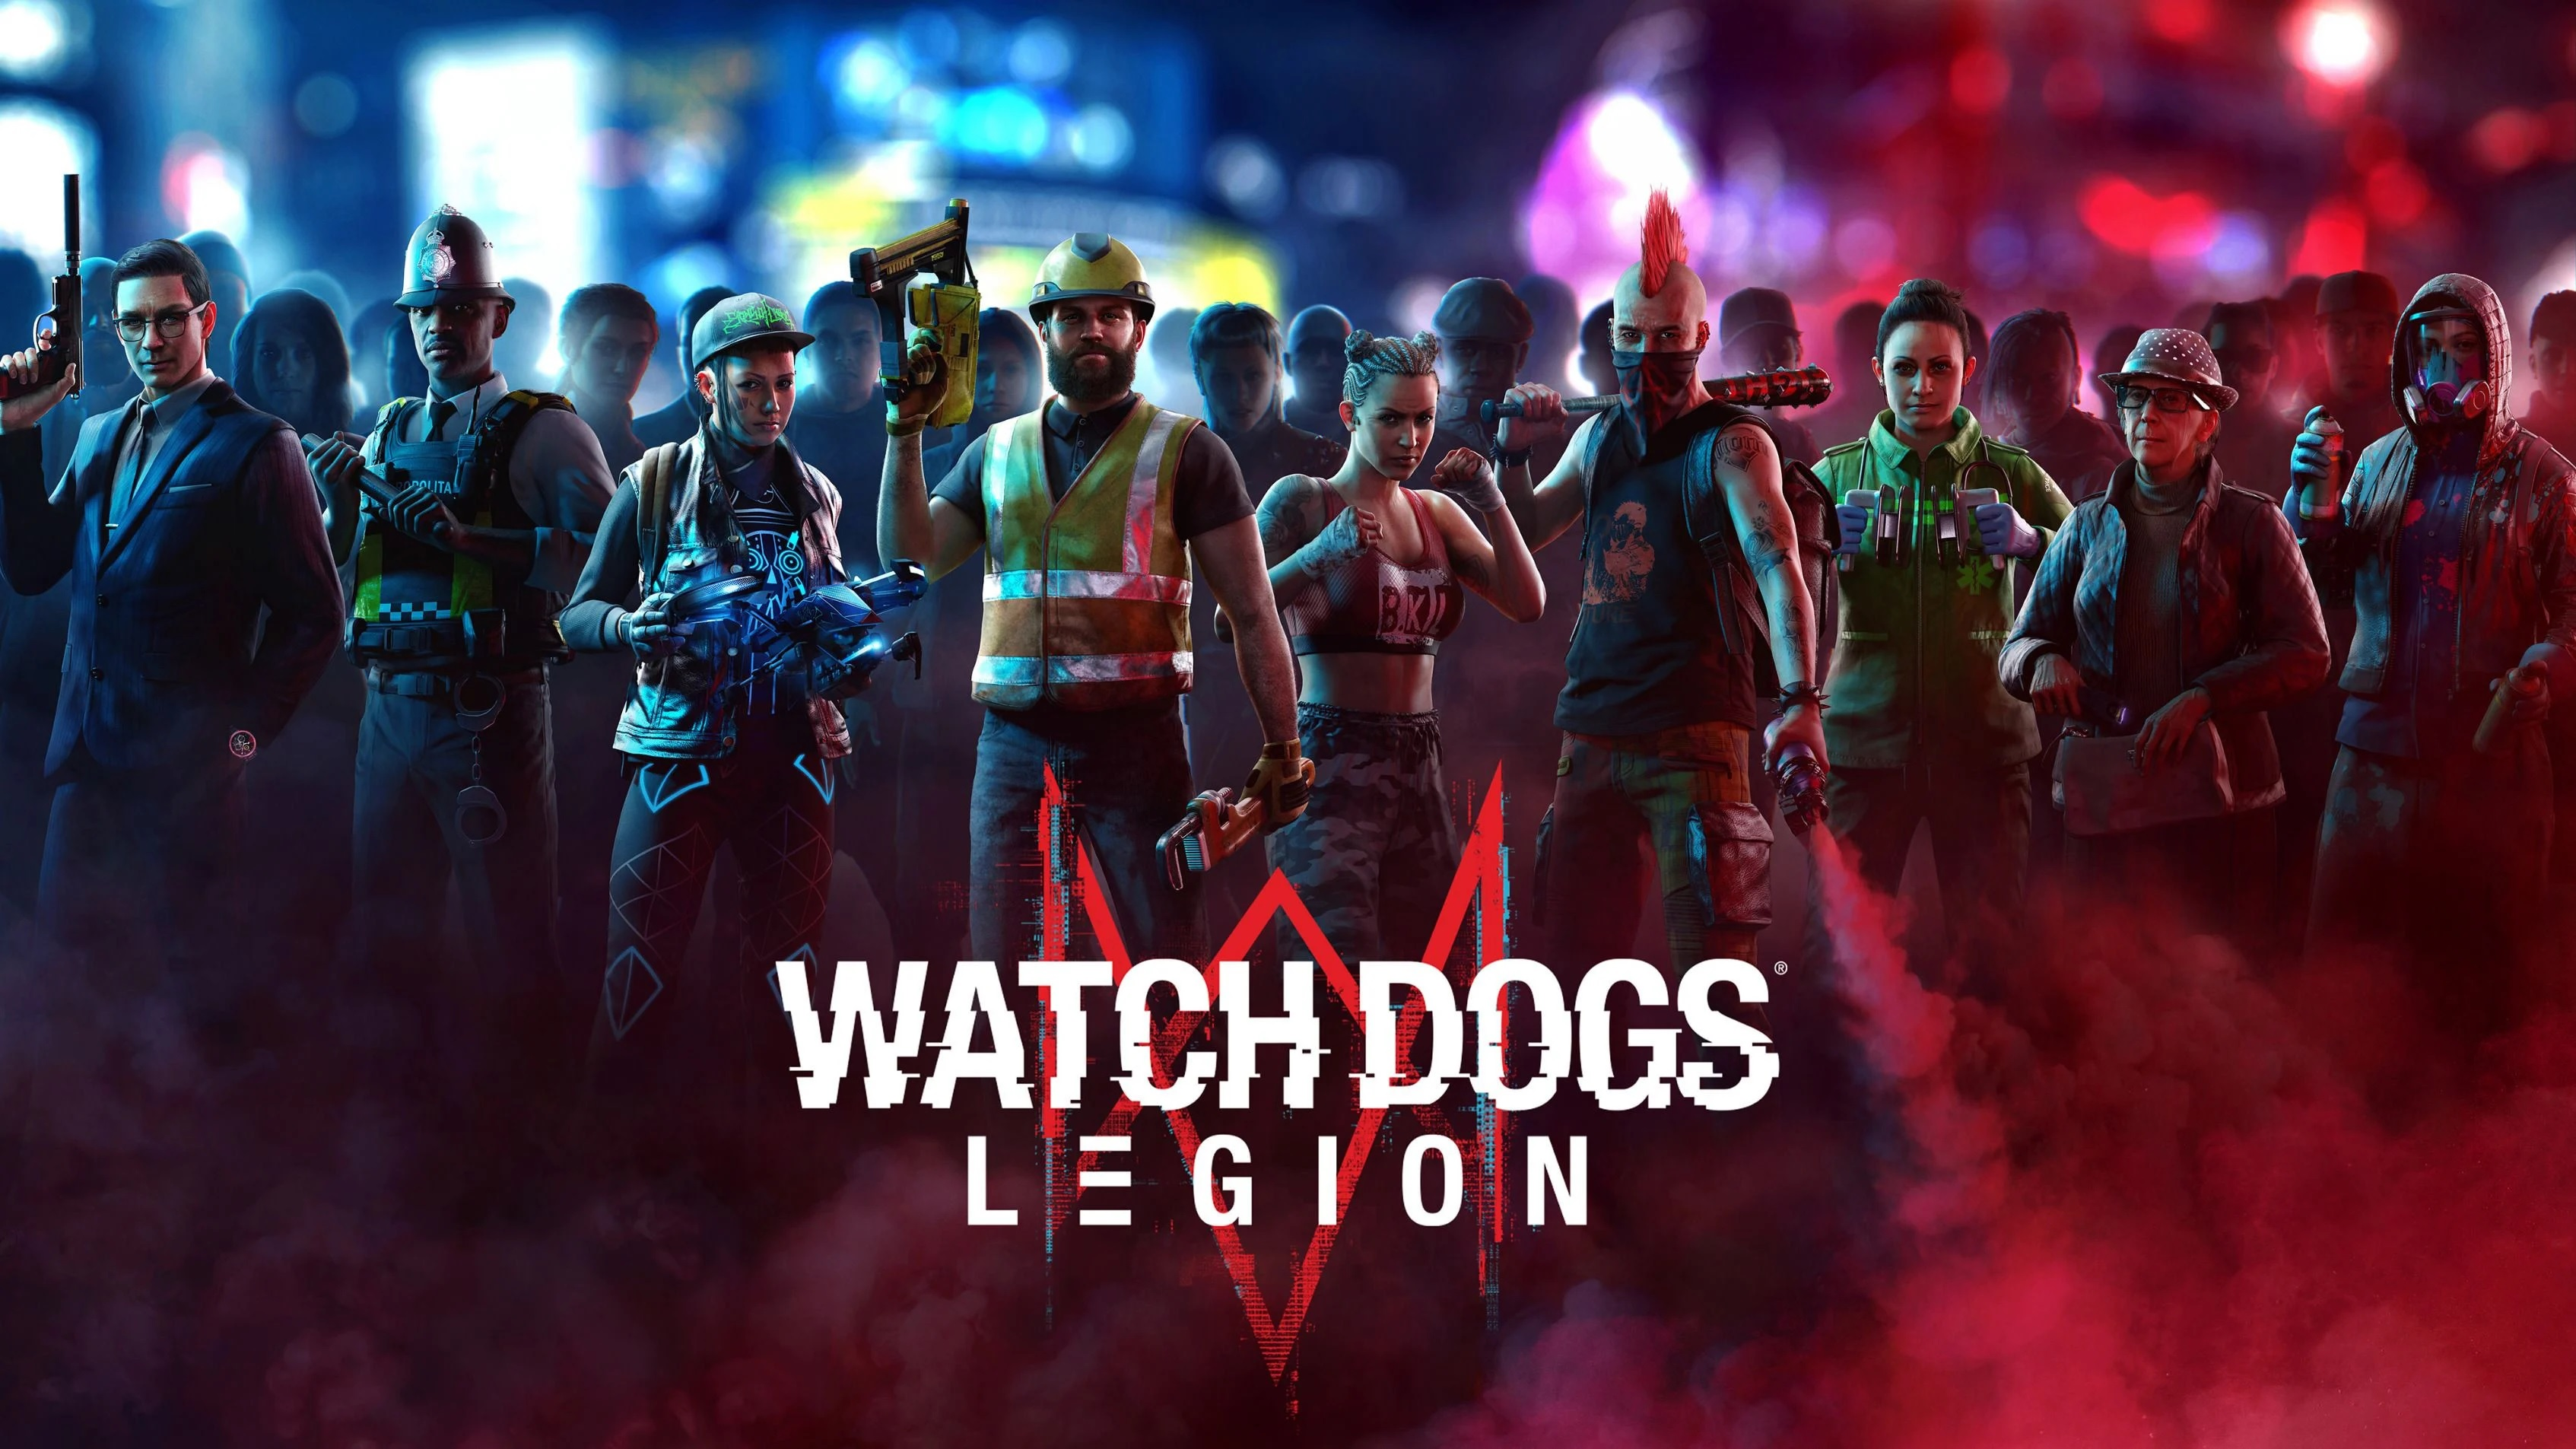 We now know the graphic requirements for Watch Dogs Legion